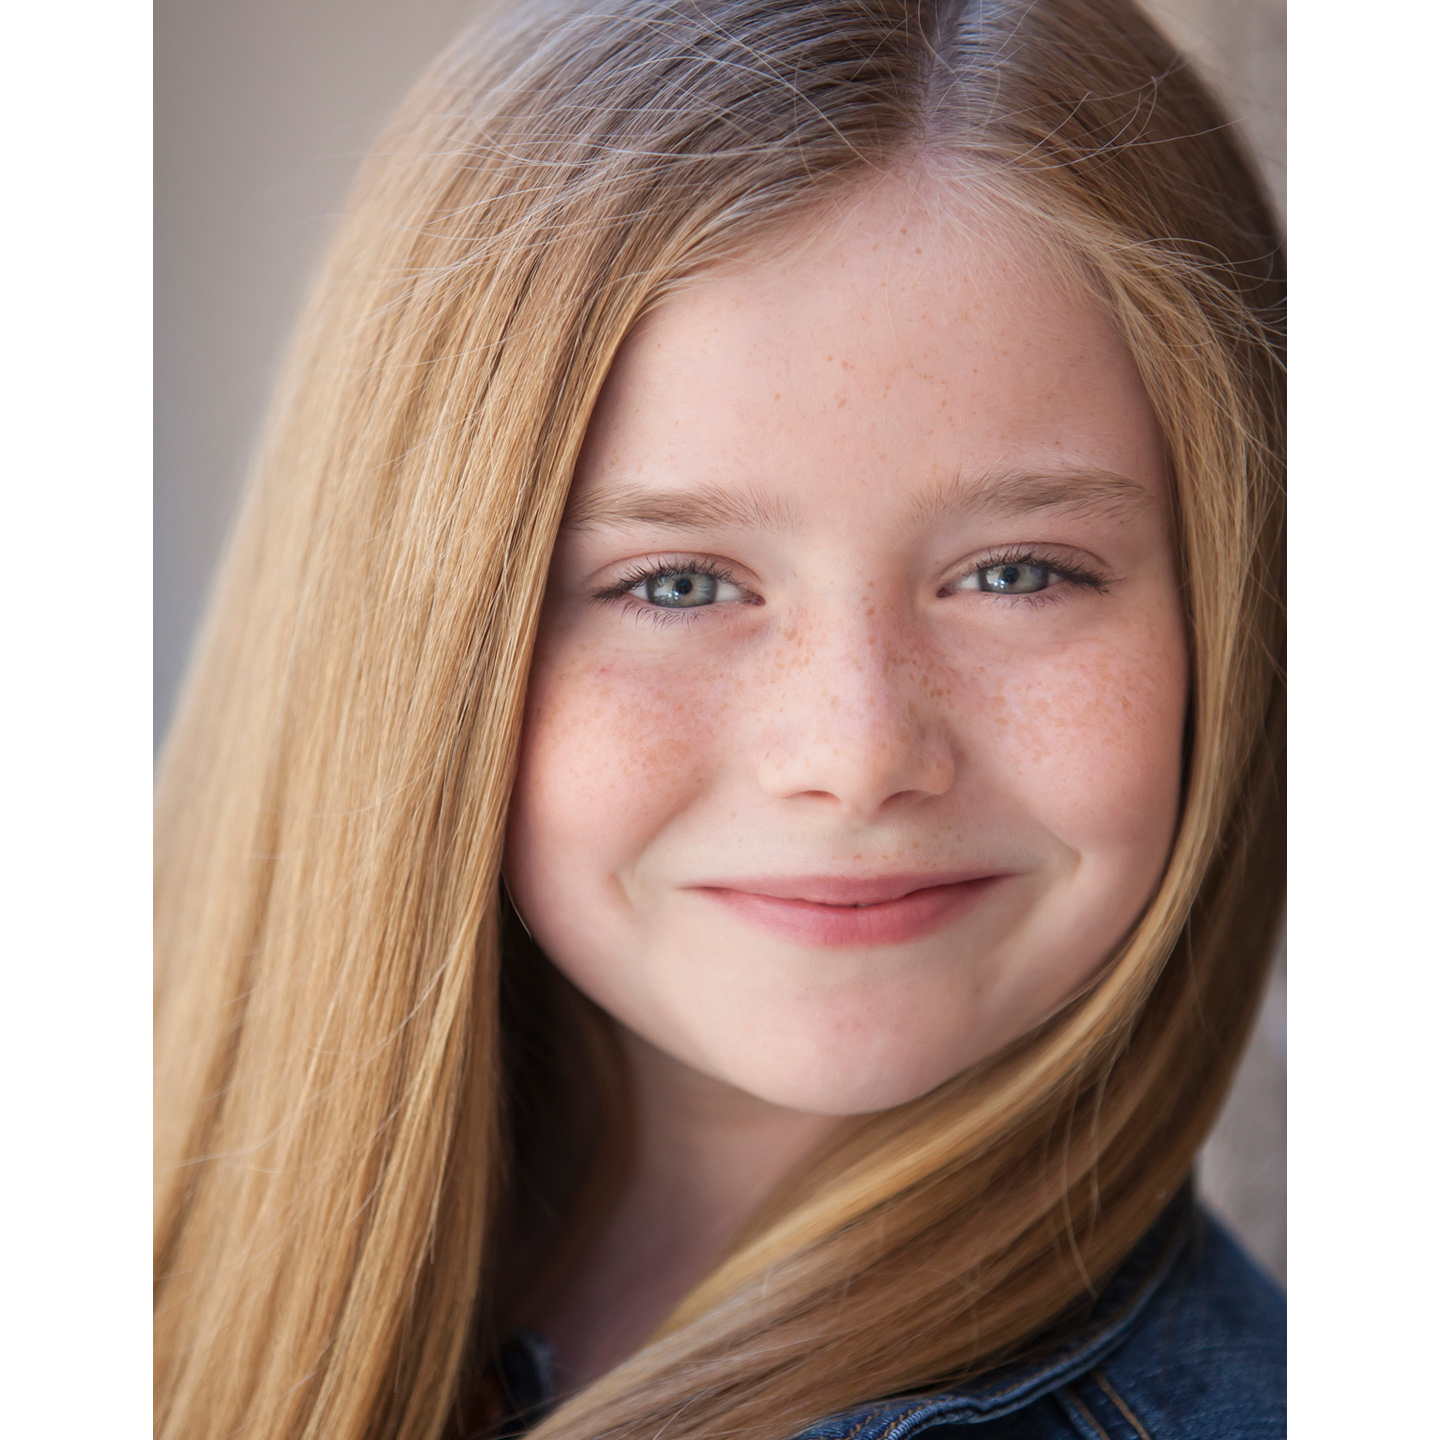 Child Actor Headshot Photographer Denver | Merritt Portrait Studio